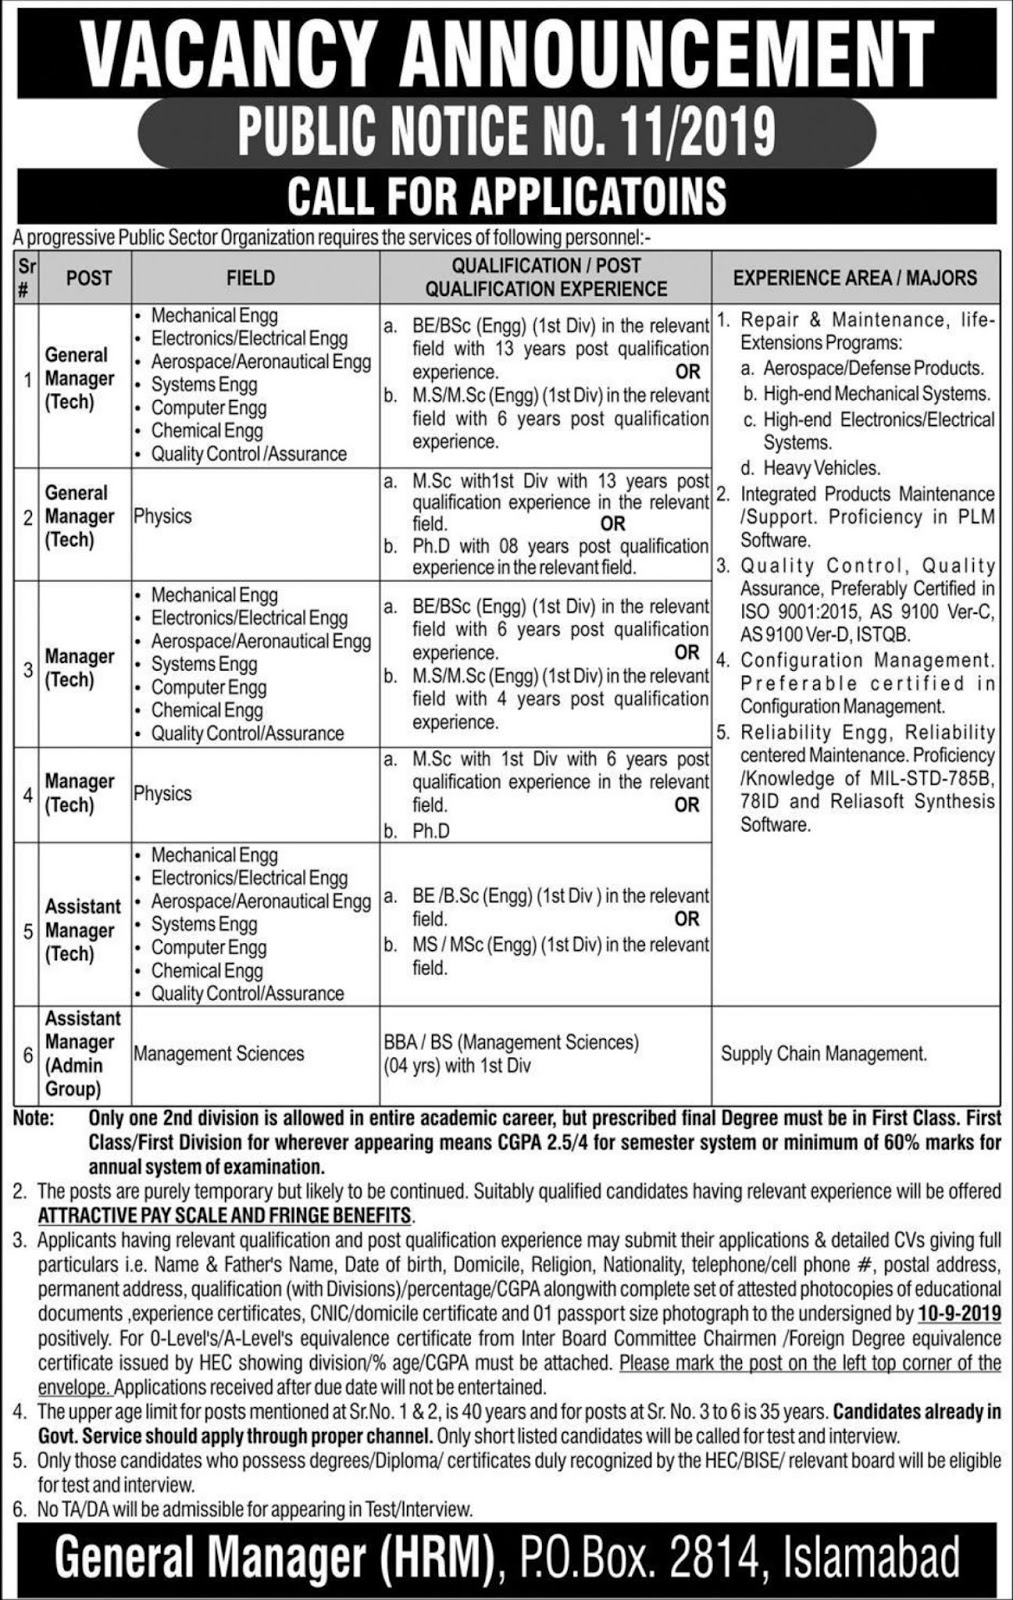 Public Sector Organization Jobs 2019 PO Box 2814 Islamabad for Assistant Managers, General Managers & Managers